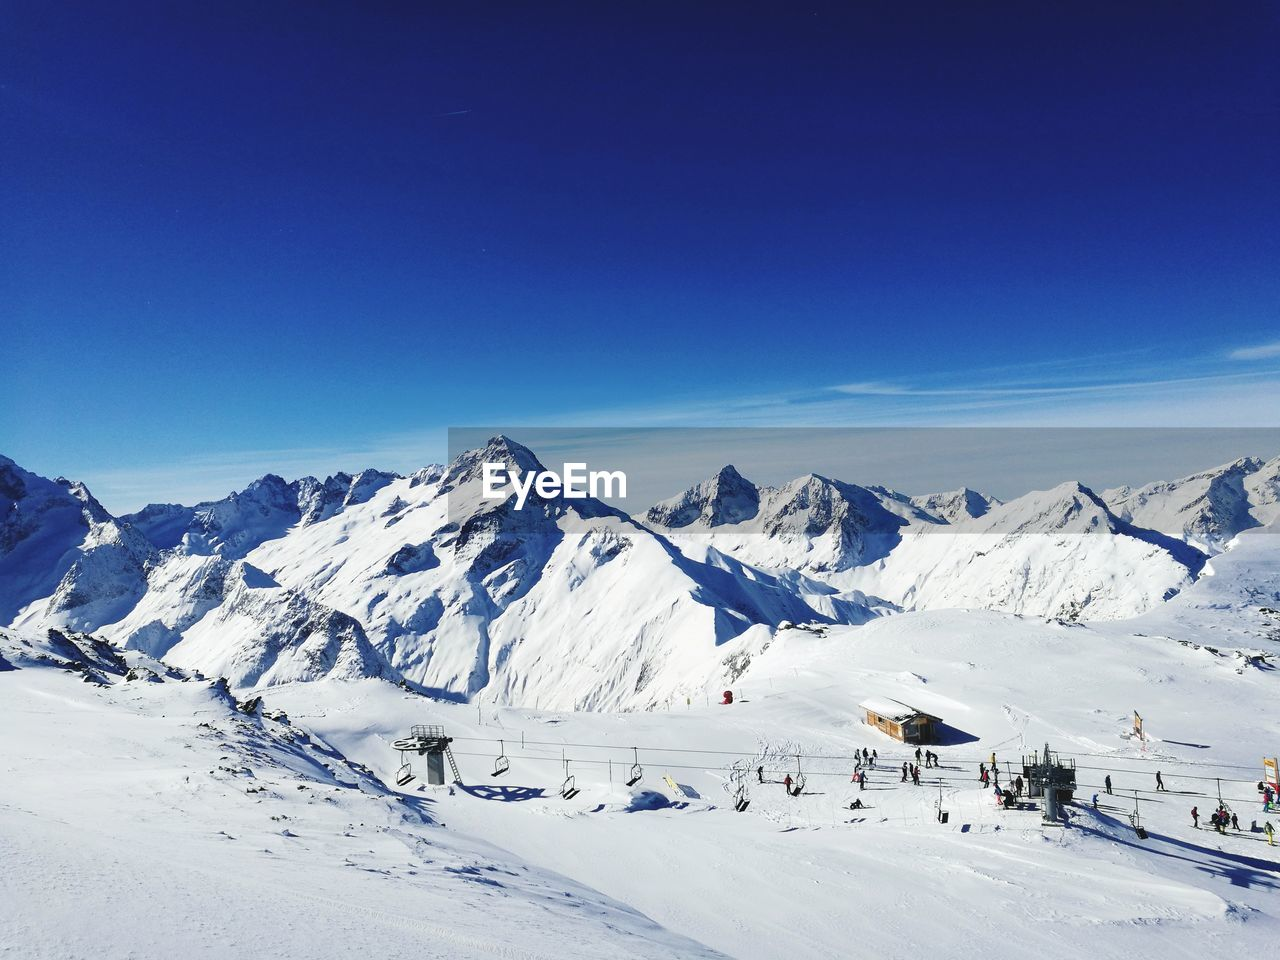 winter, cold temperature, snow, sky, mountain, scenics - nature, blue, beauty in nature, tranquil scene, tranquility, nature, non-urban scene, snowcapped mountain, white color, copy space, day, mountain range, environment, clear sky, outdoors